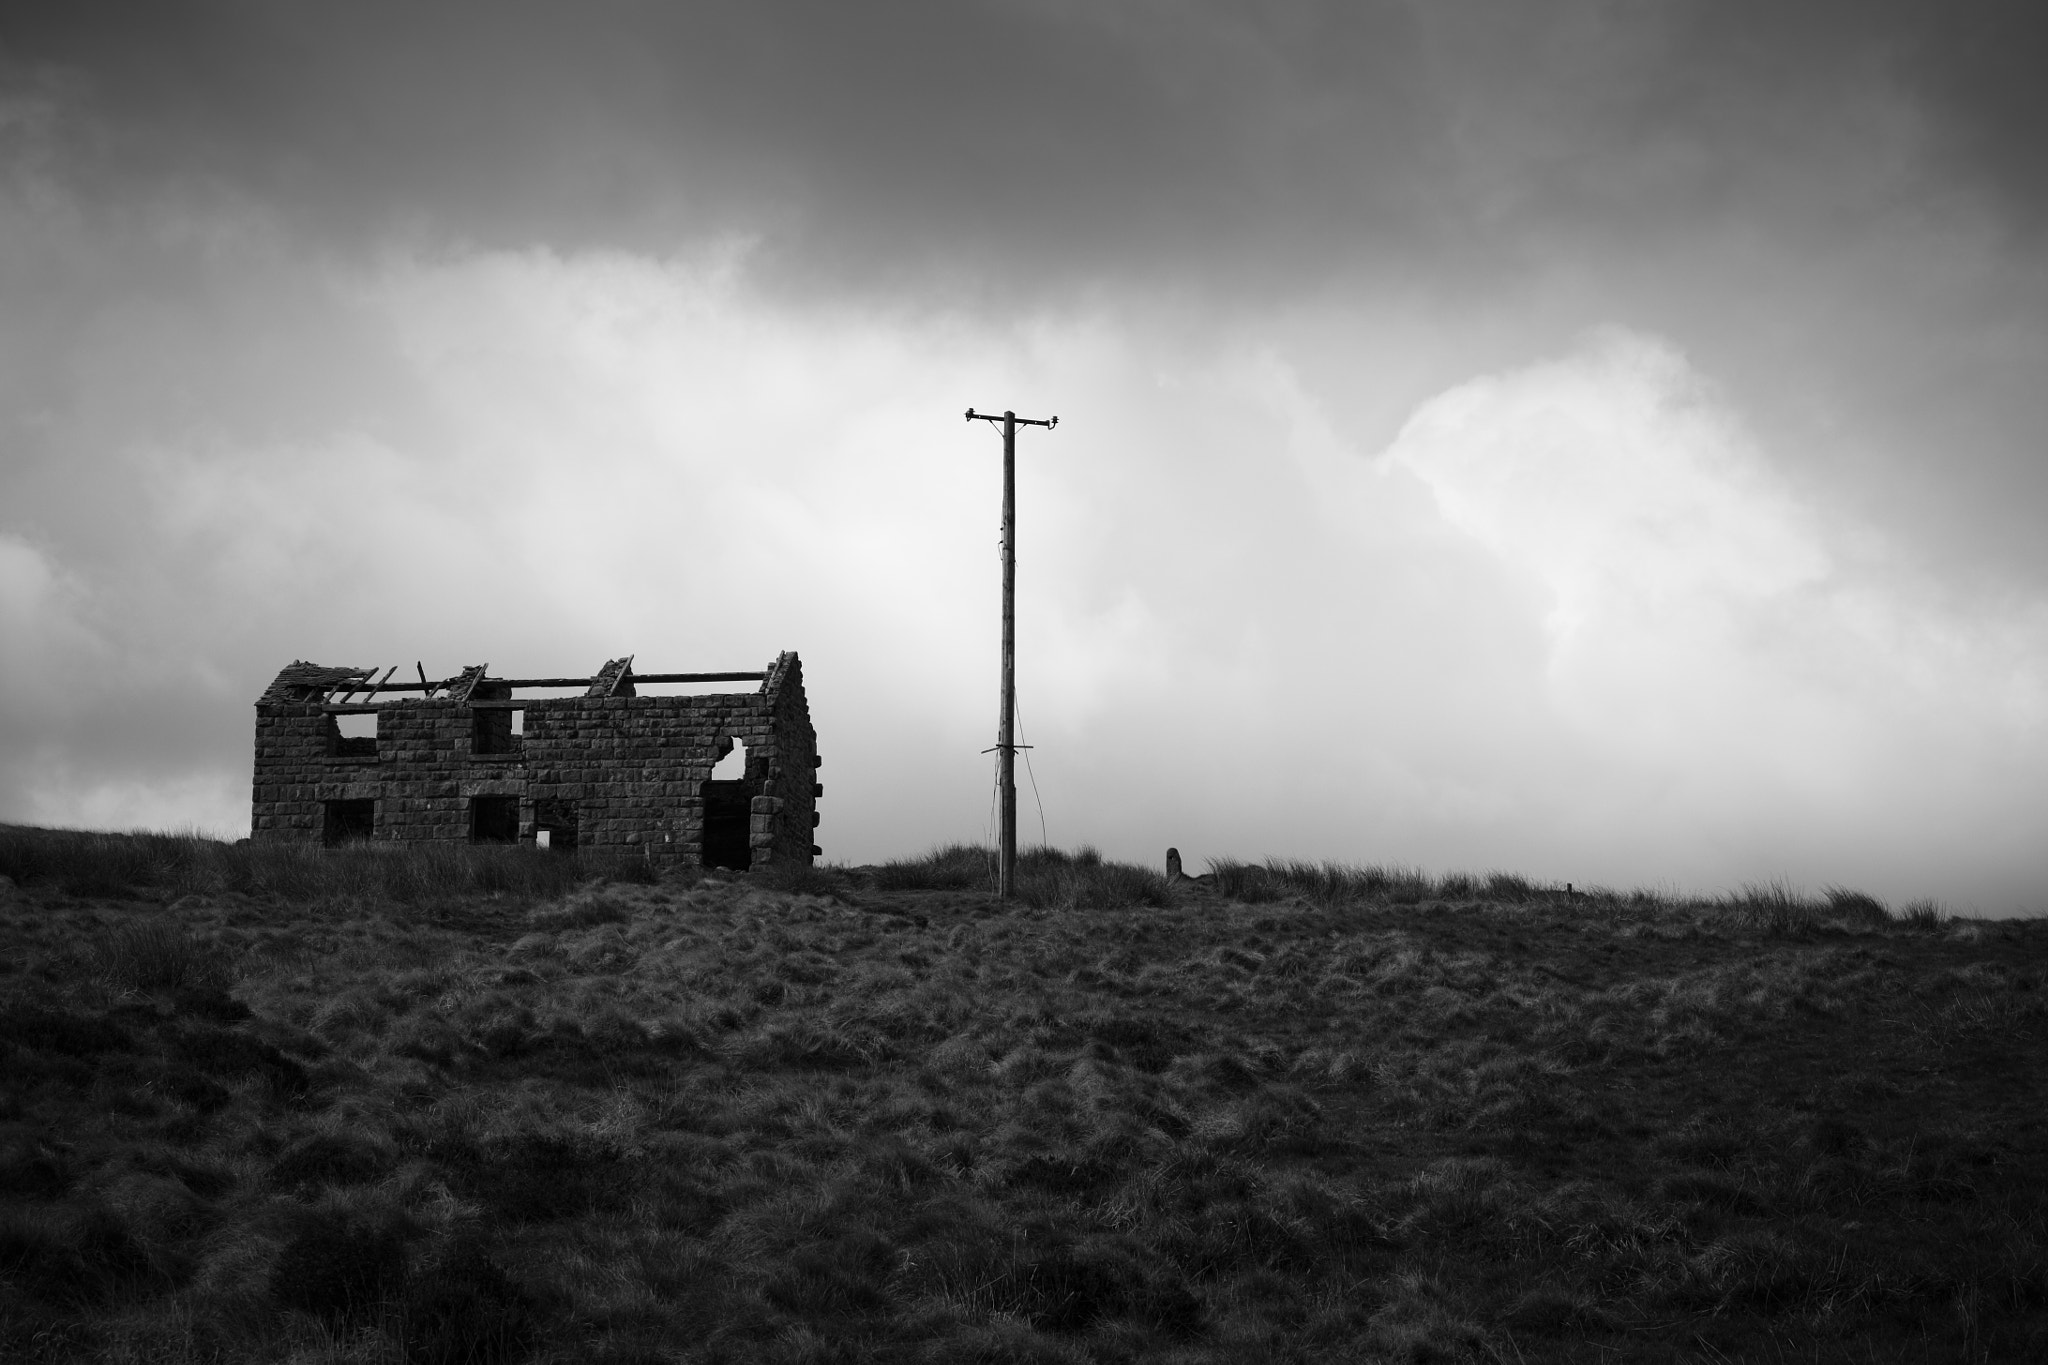 Photograph Desolate Farmhouse by Andy Stafford on 500px